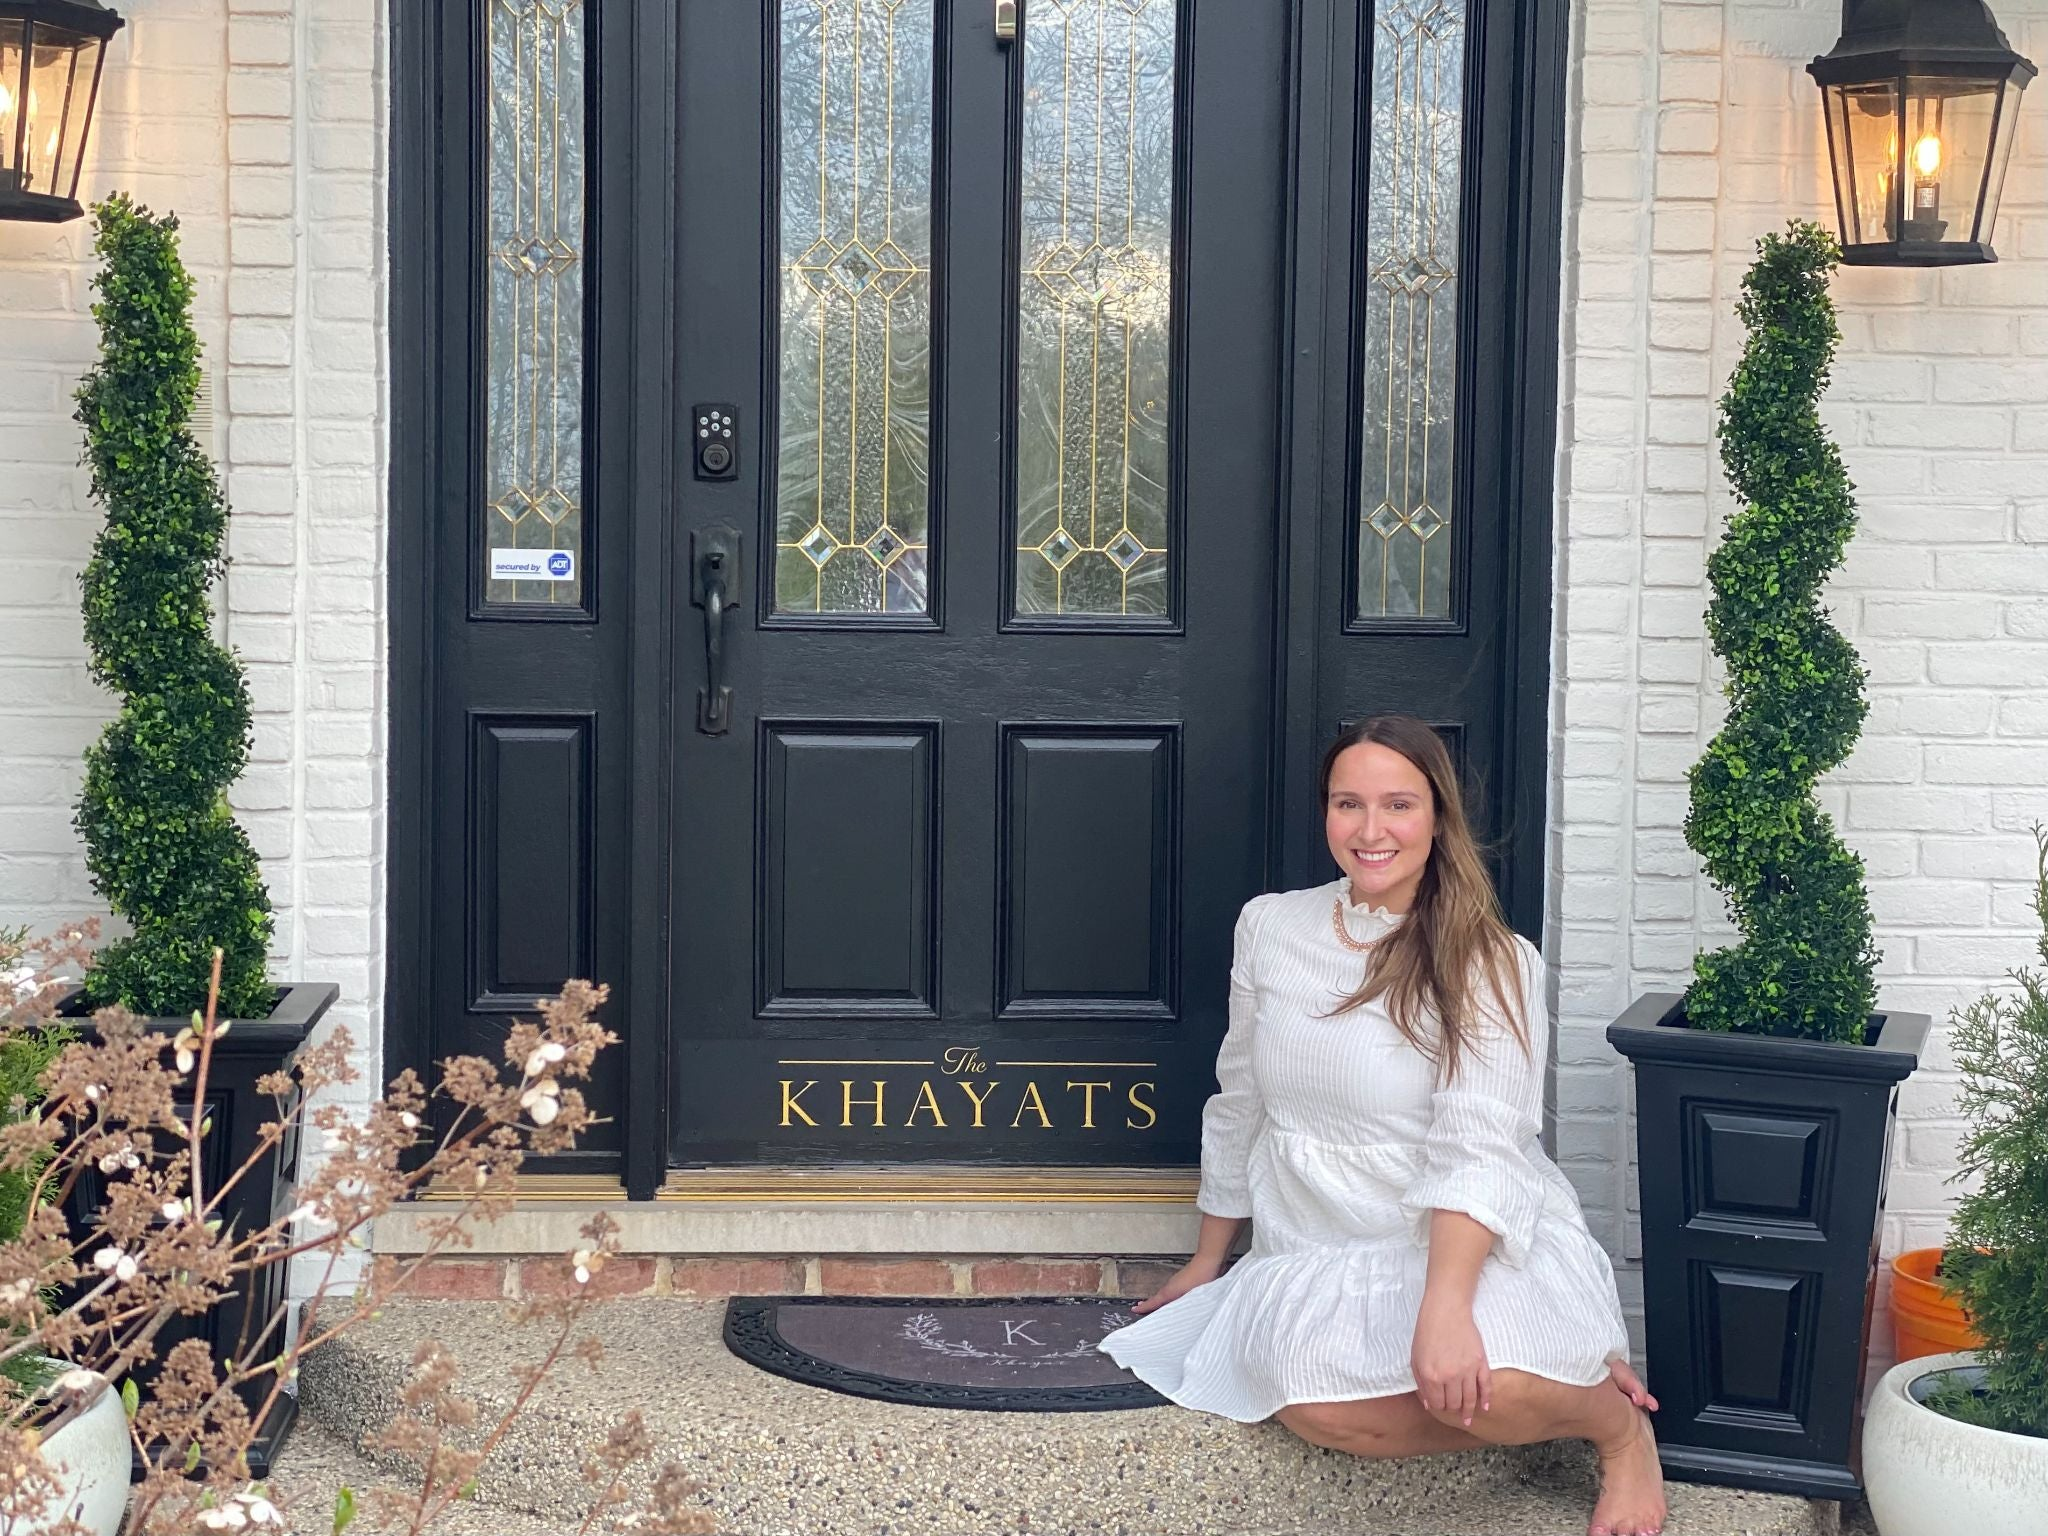 beautiful woman sitting front of an entrance door